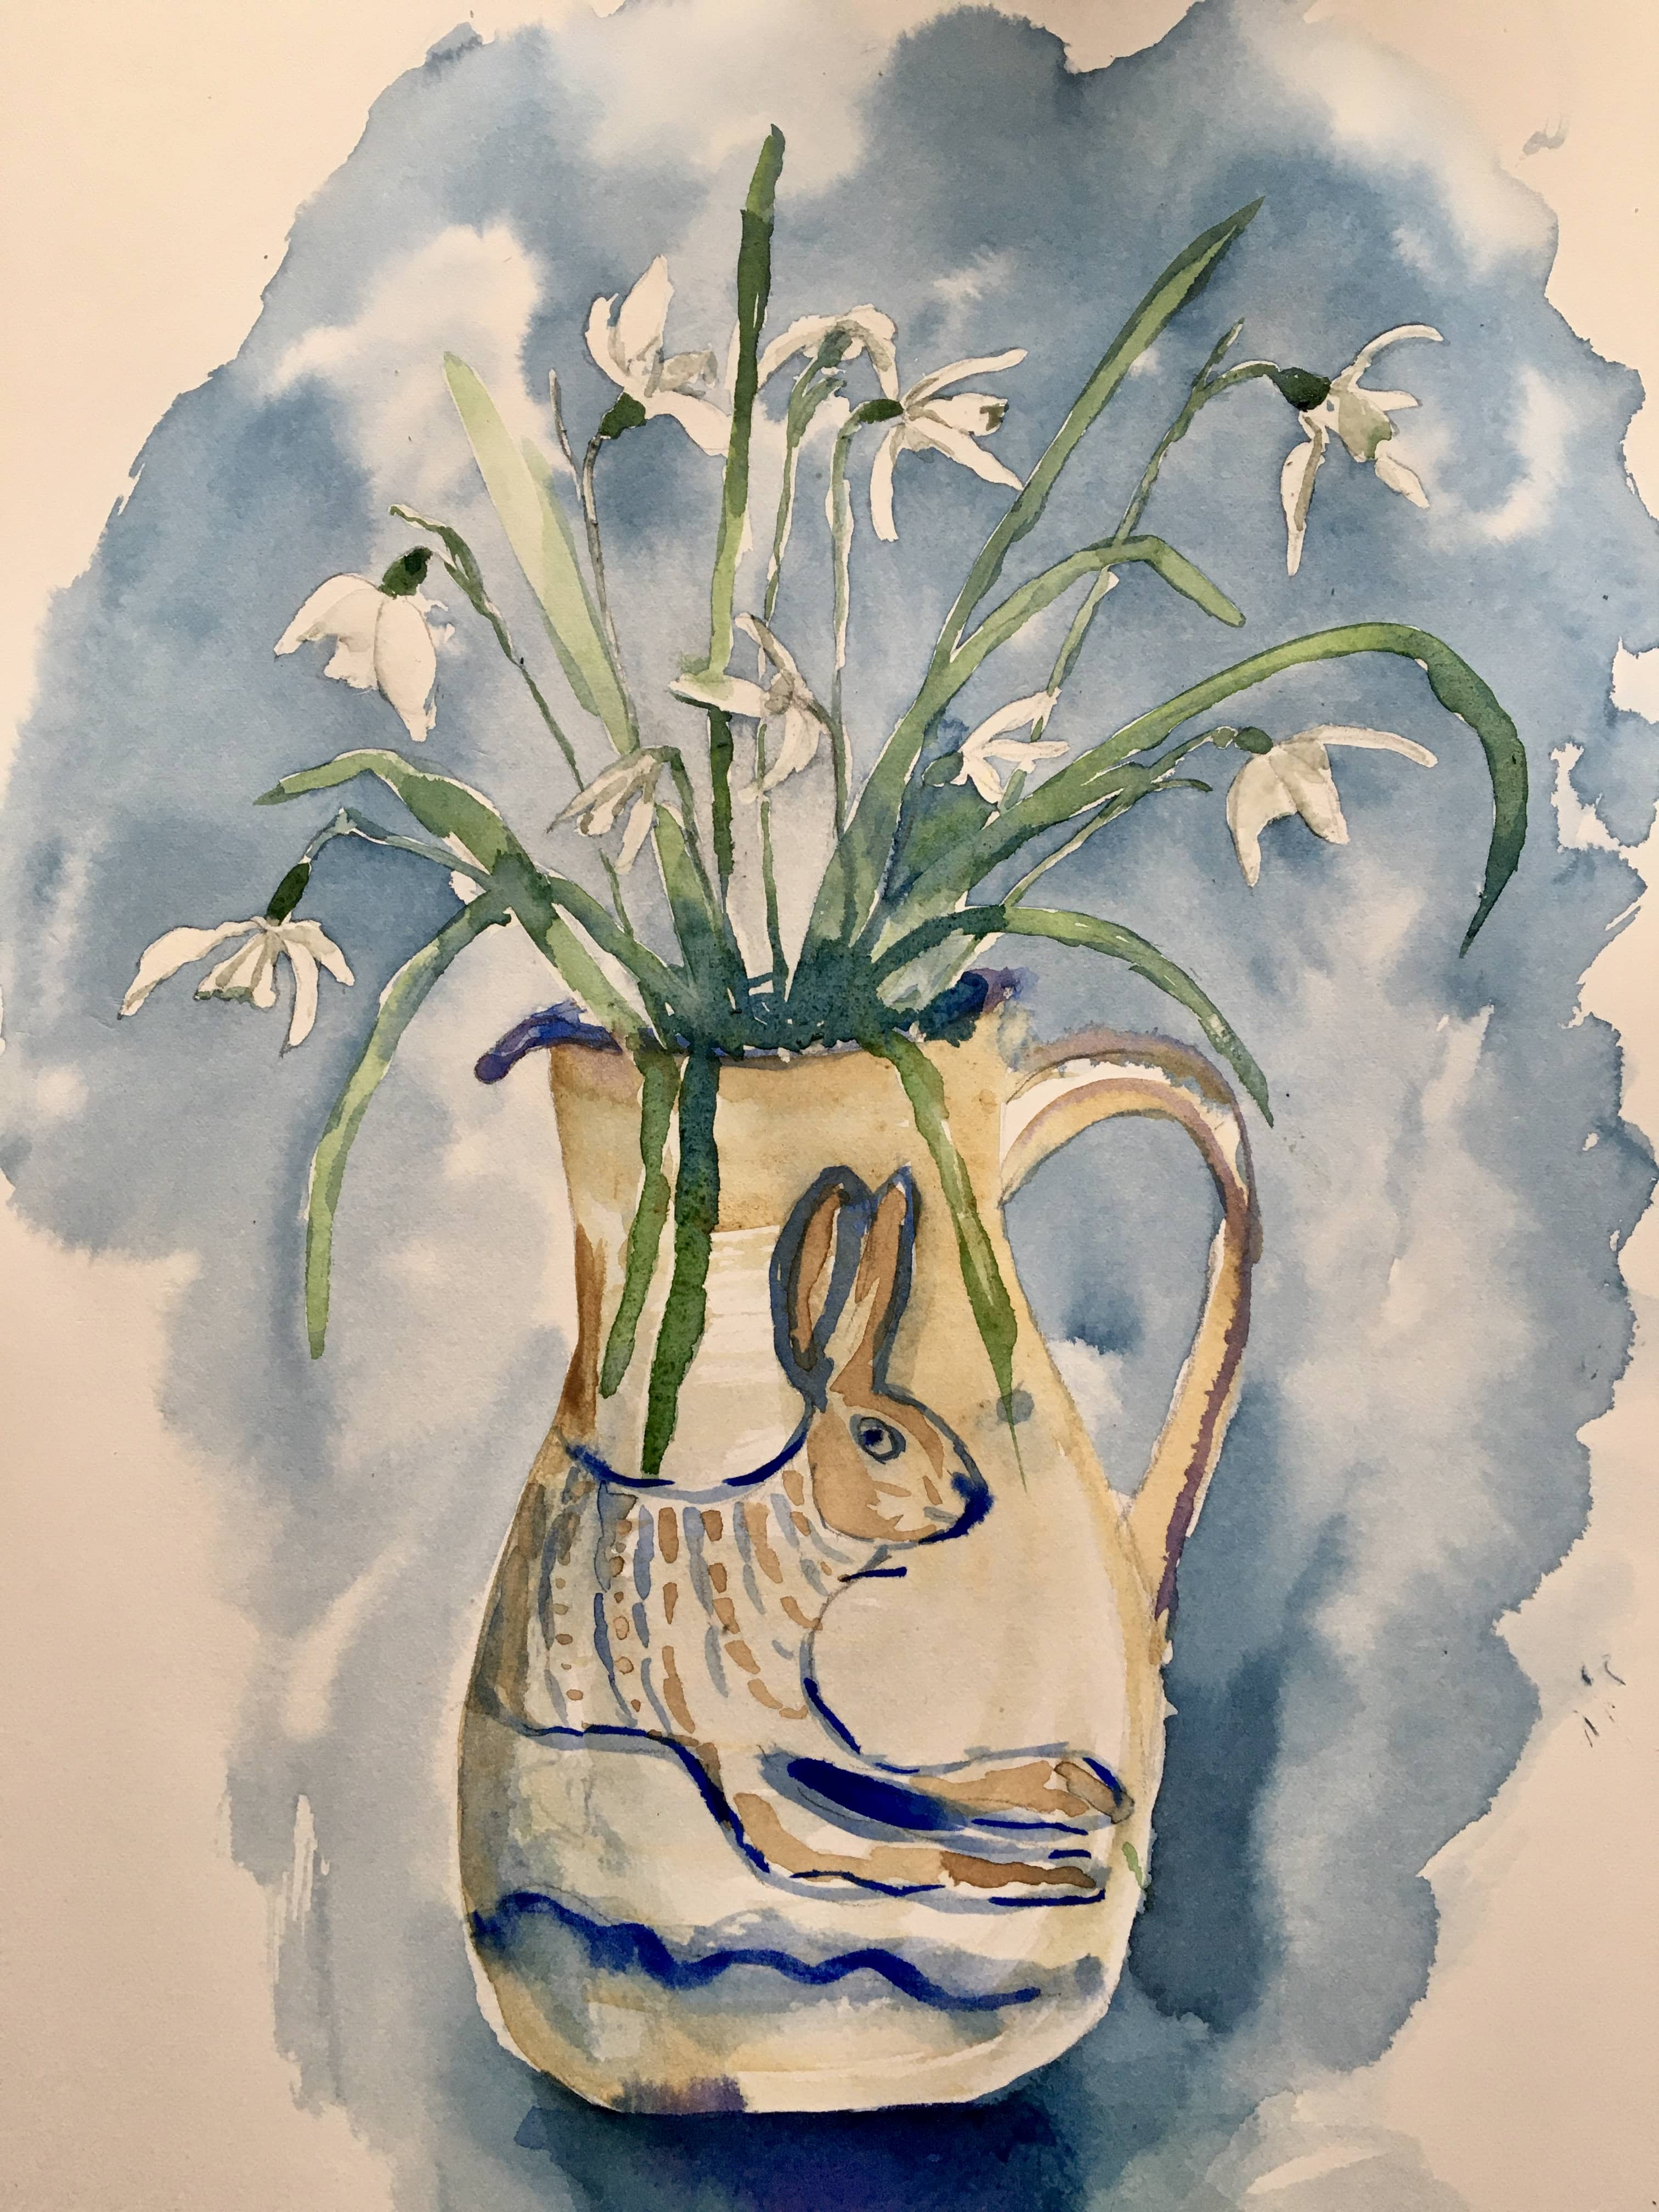 watercolour watercolor snowdrops in jug with rabbit